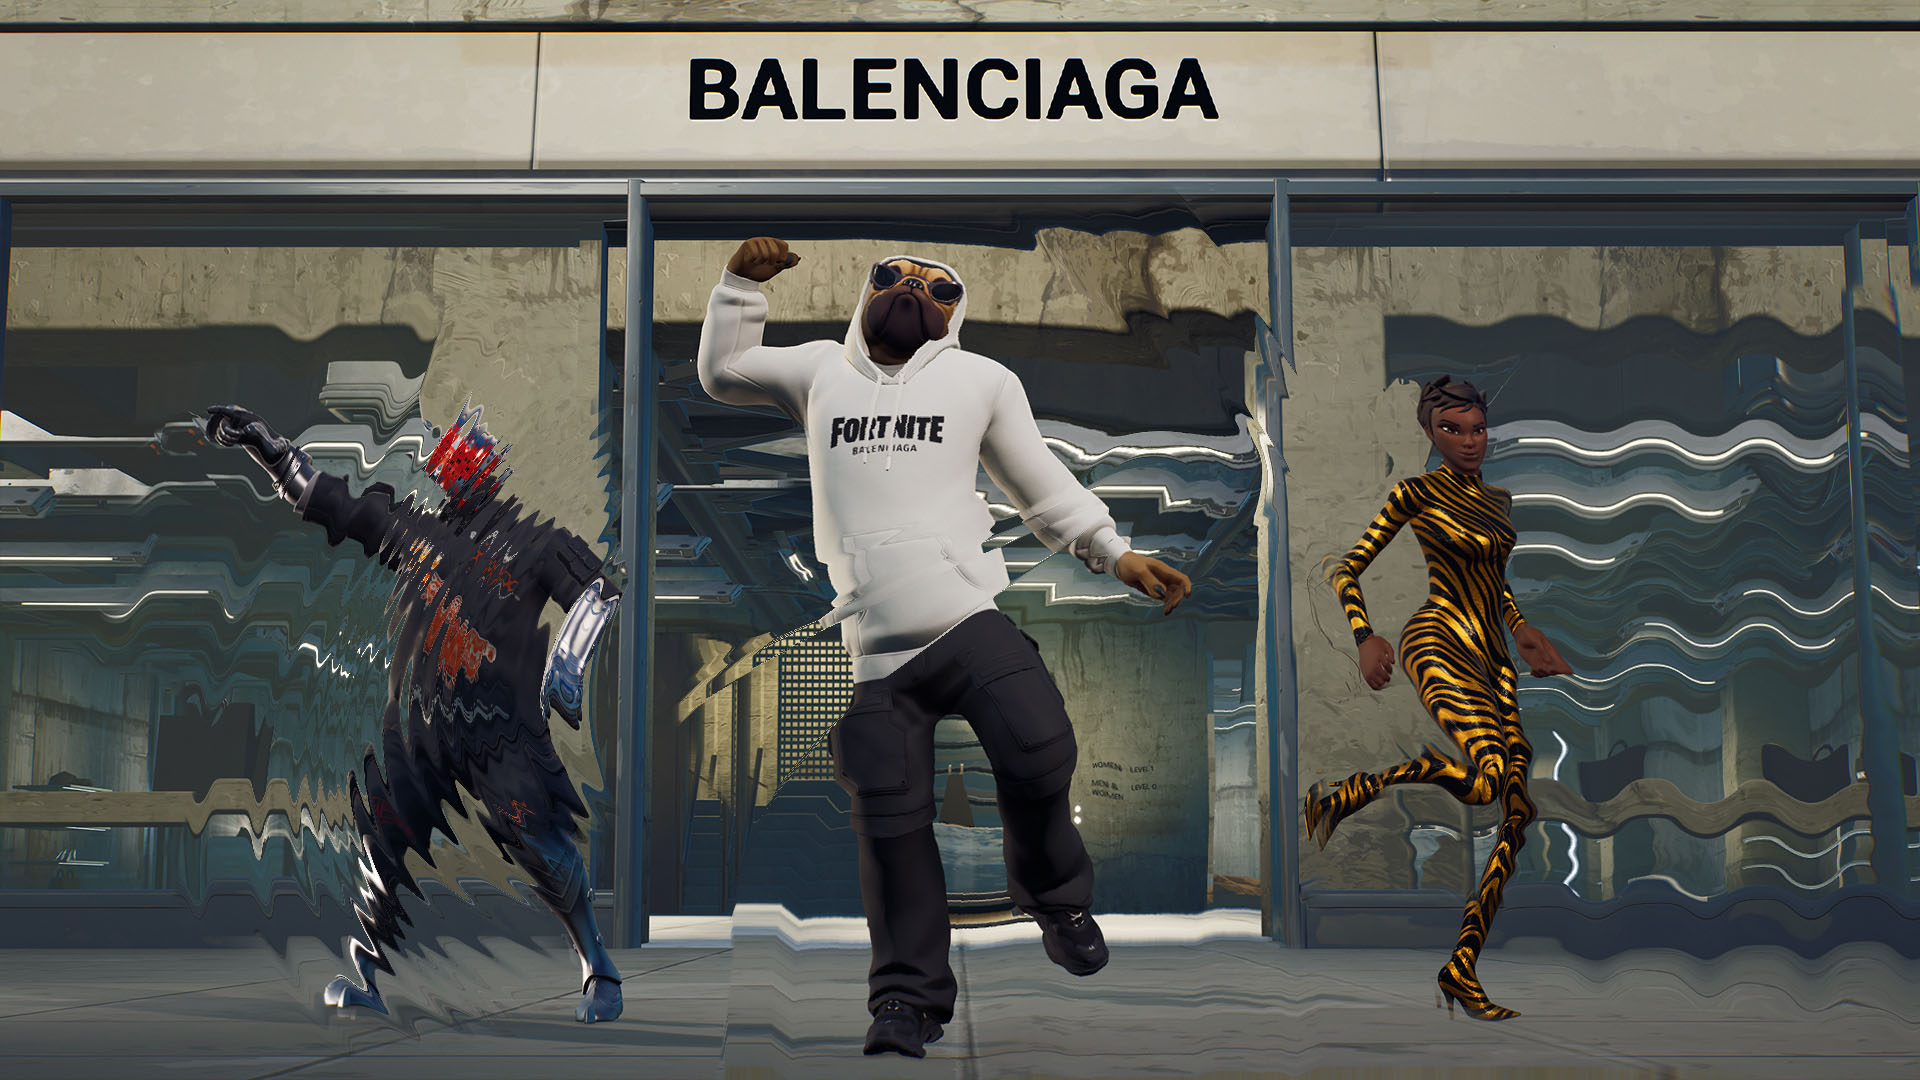 a pug from Fortnite wearing a white hoodie in front of a Balenciaga storefront